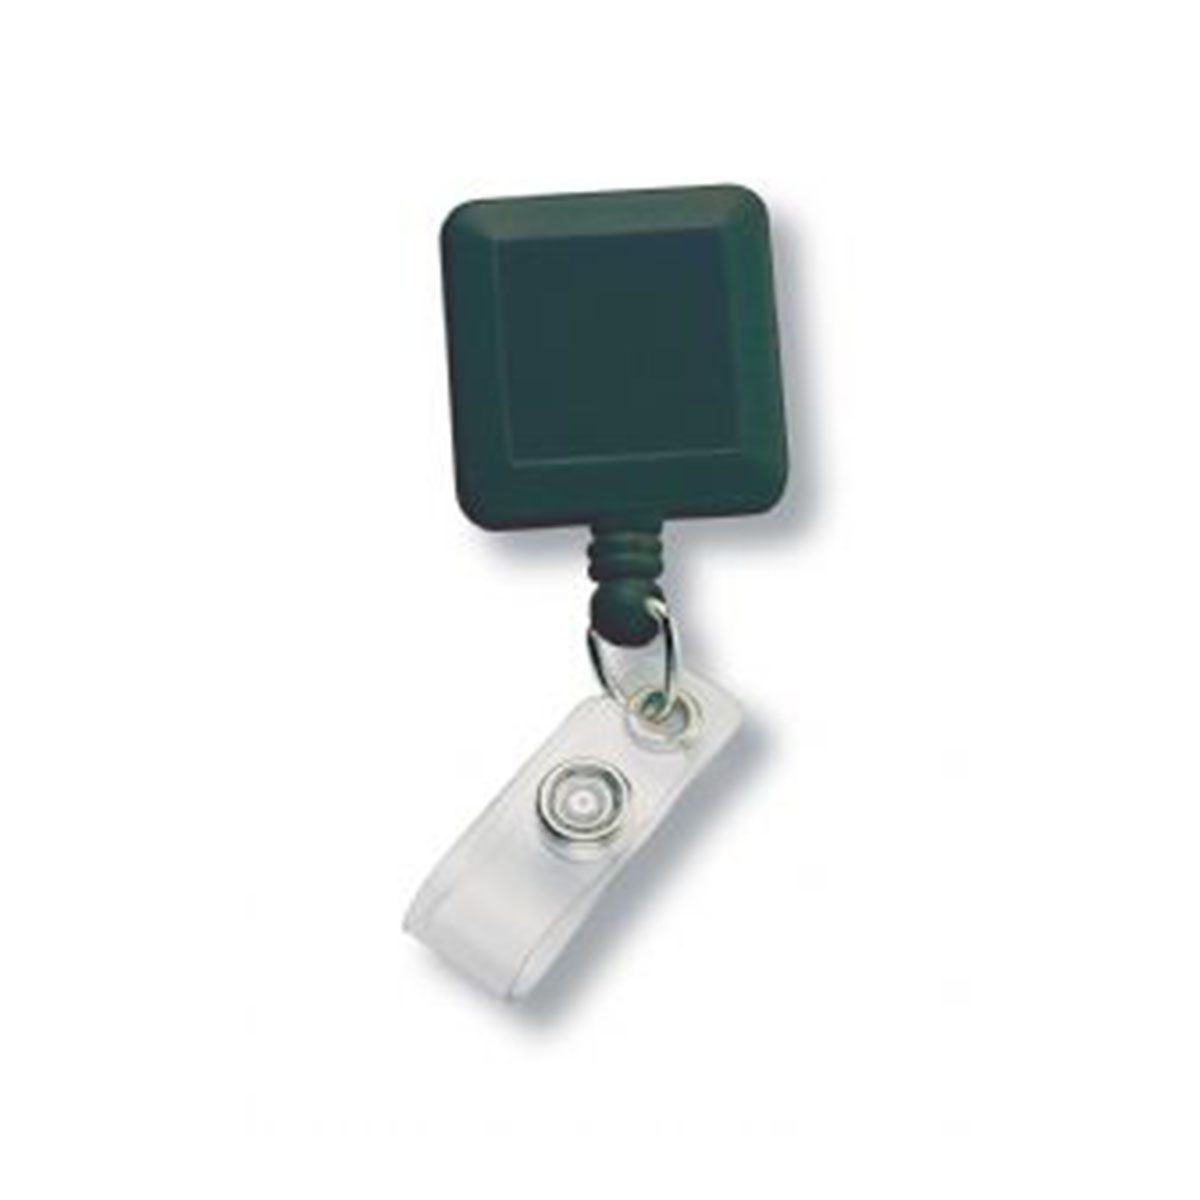 Square Retractable Badge Holder-Black.